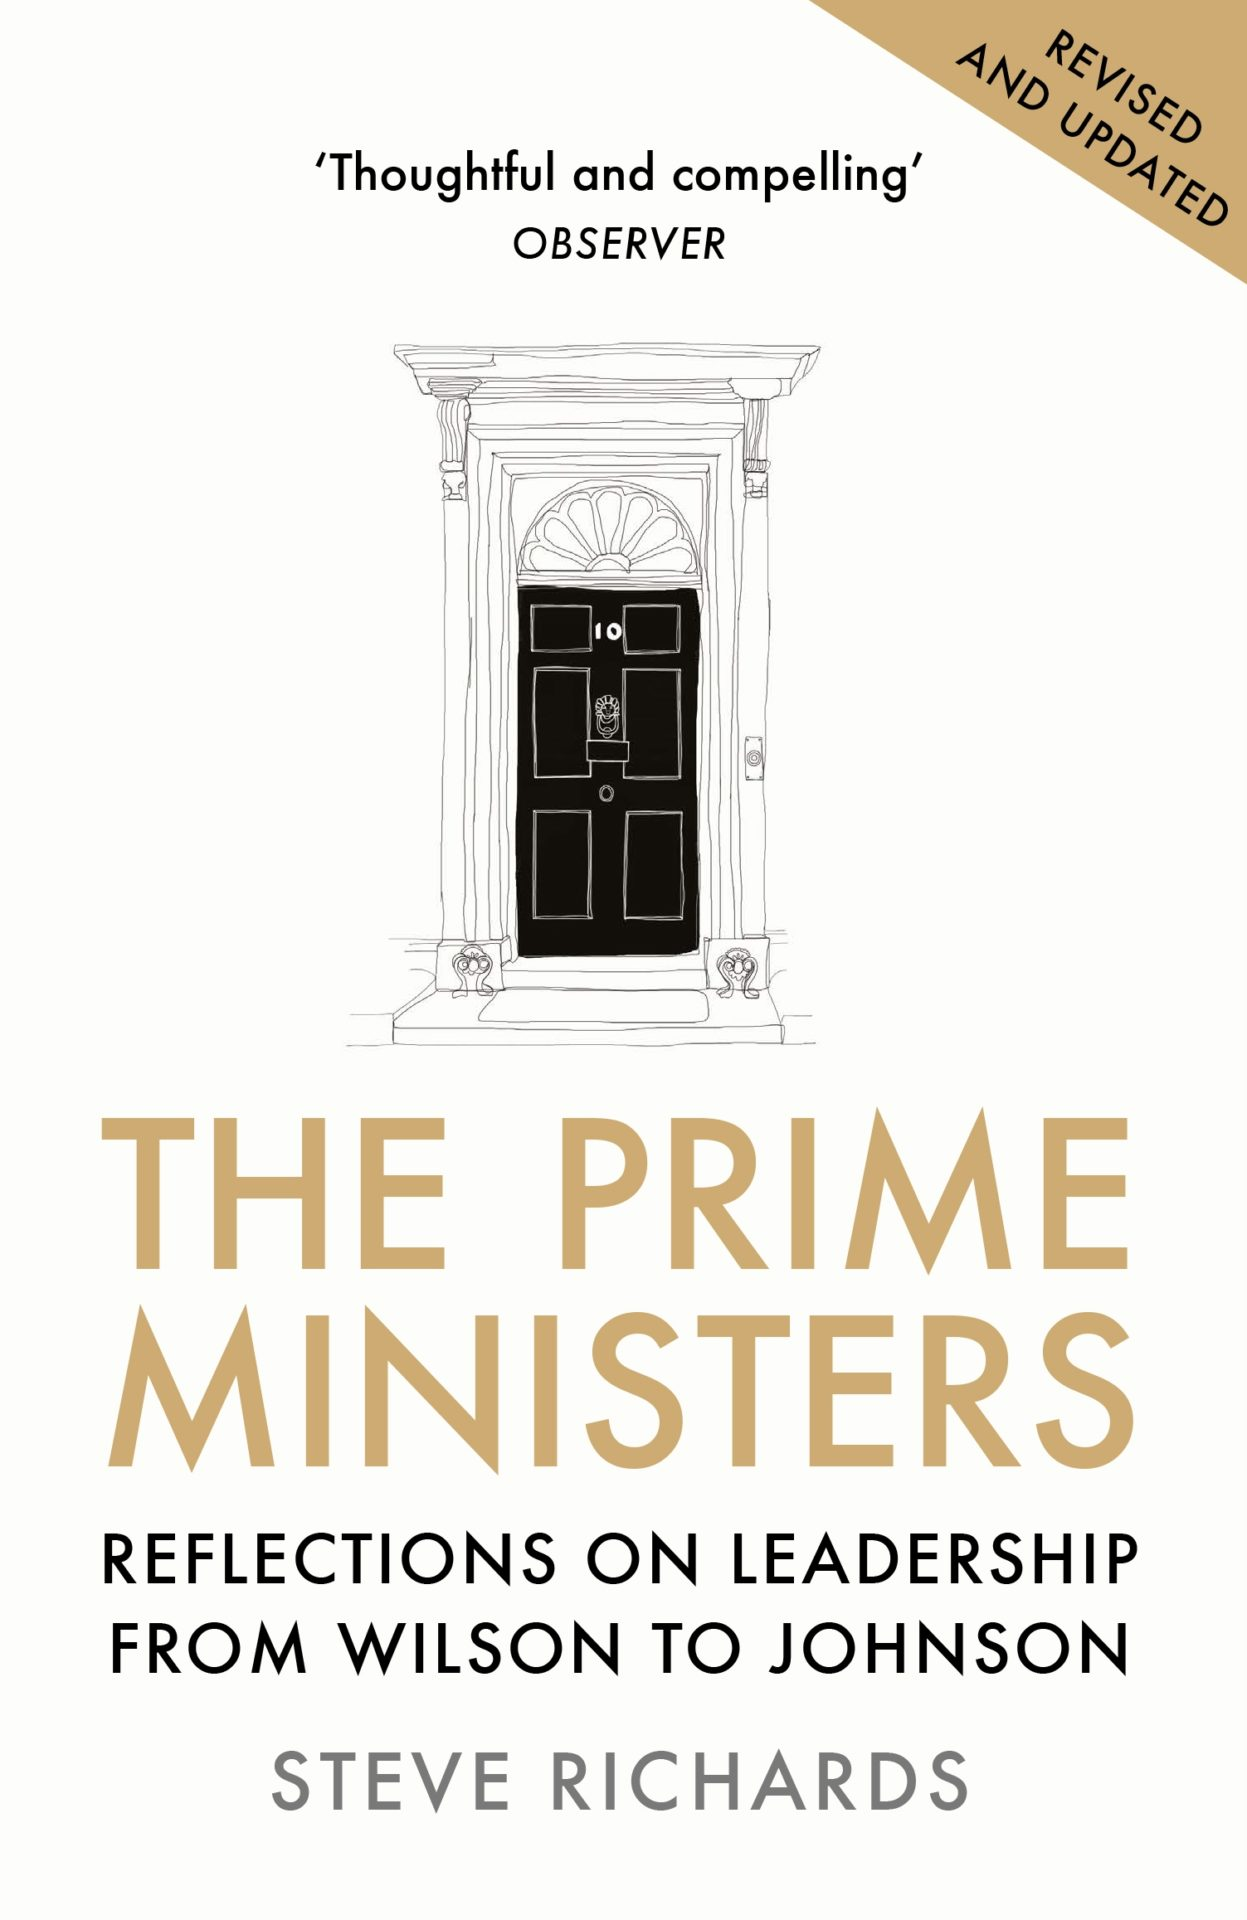 The Prime Ministers: Reflections on Leadership from Wilson to Johnson by Steve Richards | 9781786495884